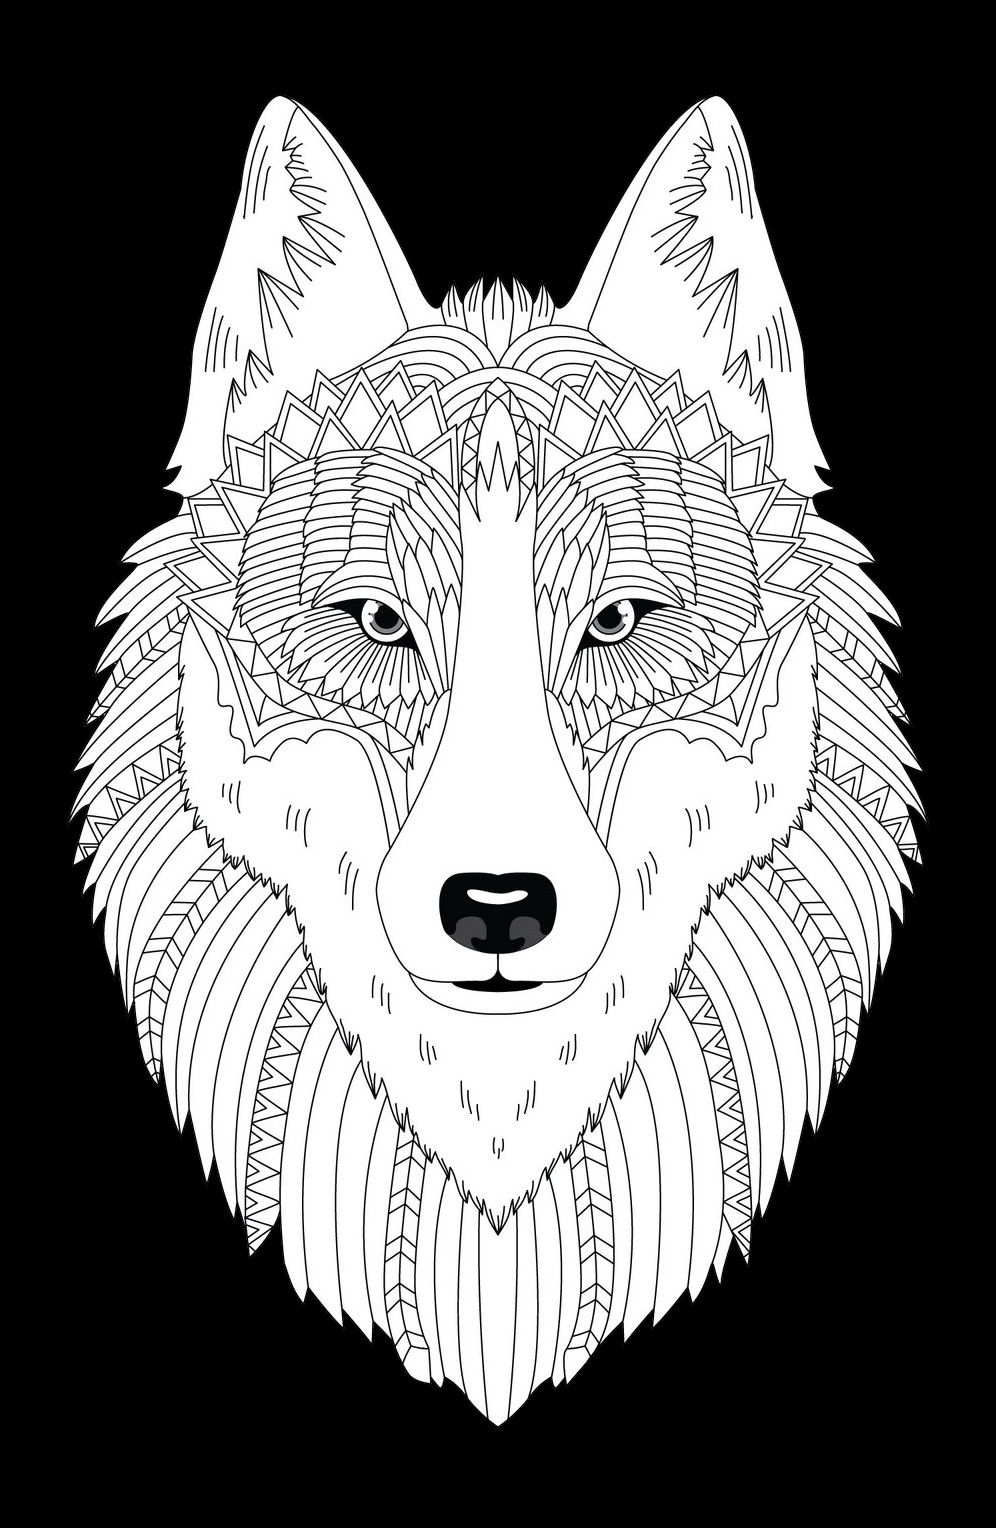 Wolf Heads Coloring Book Animal Coloring Books Animal Coloring Pages Coloring Books